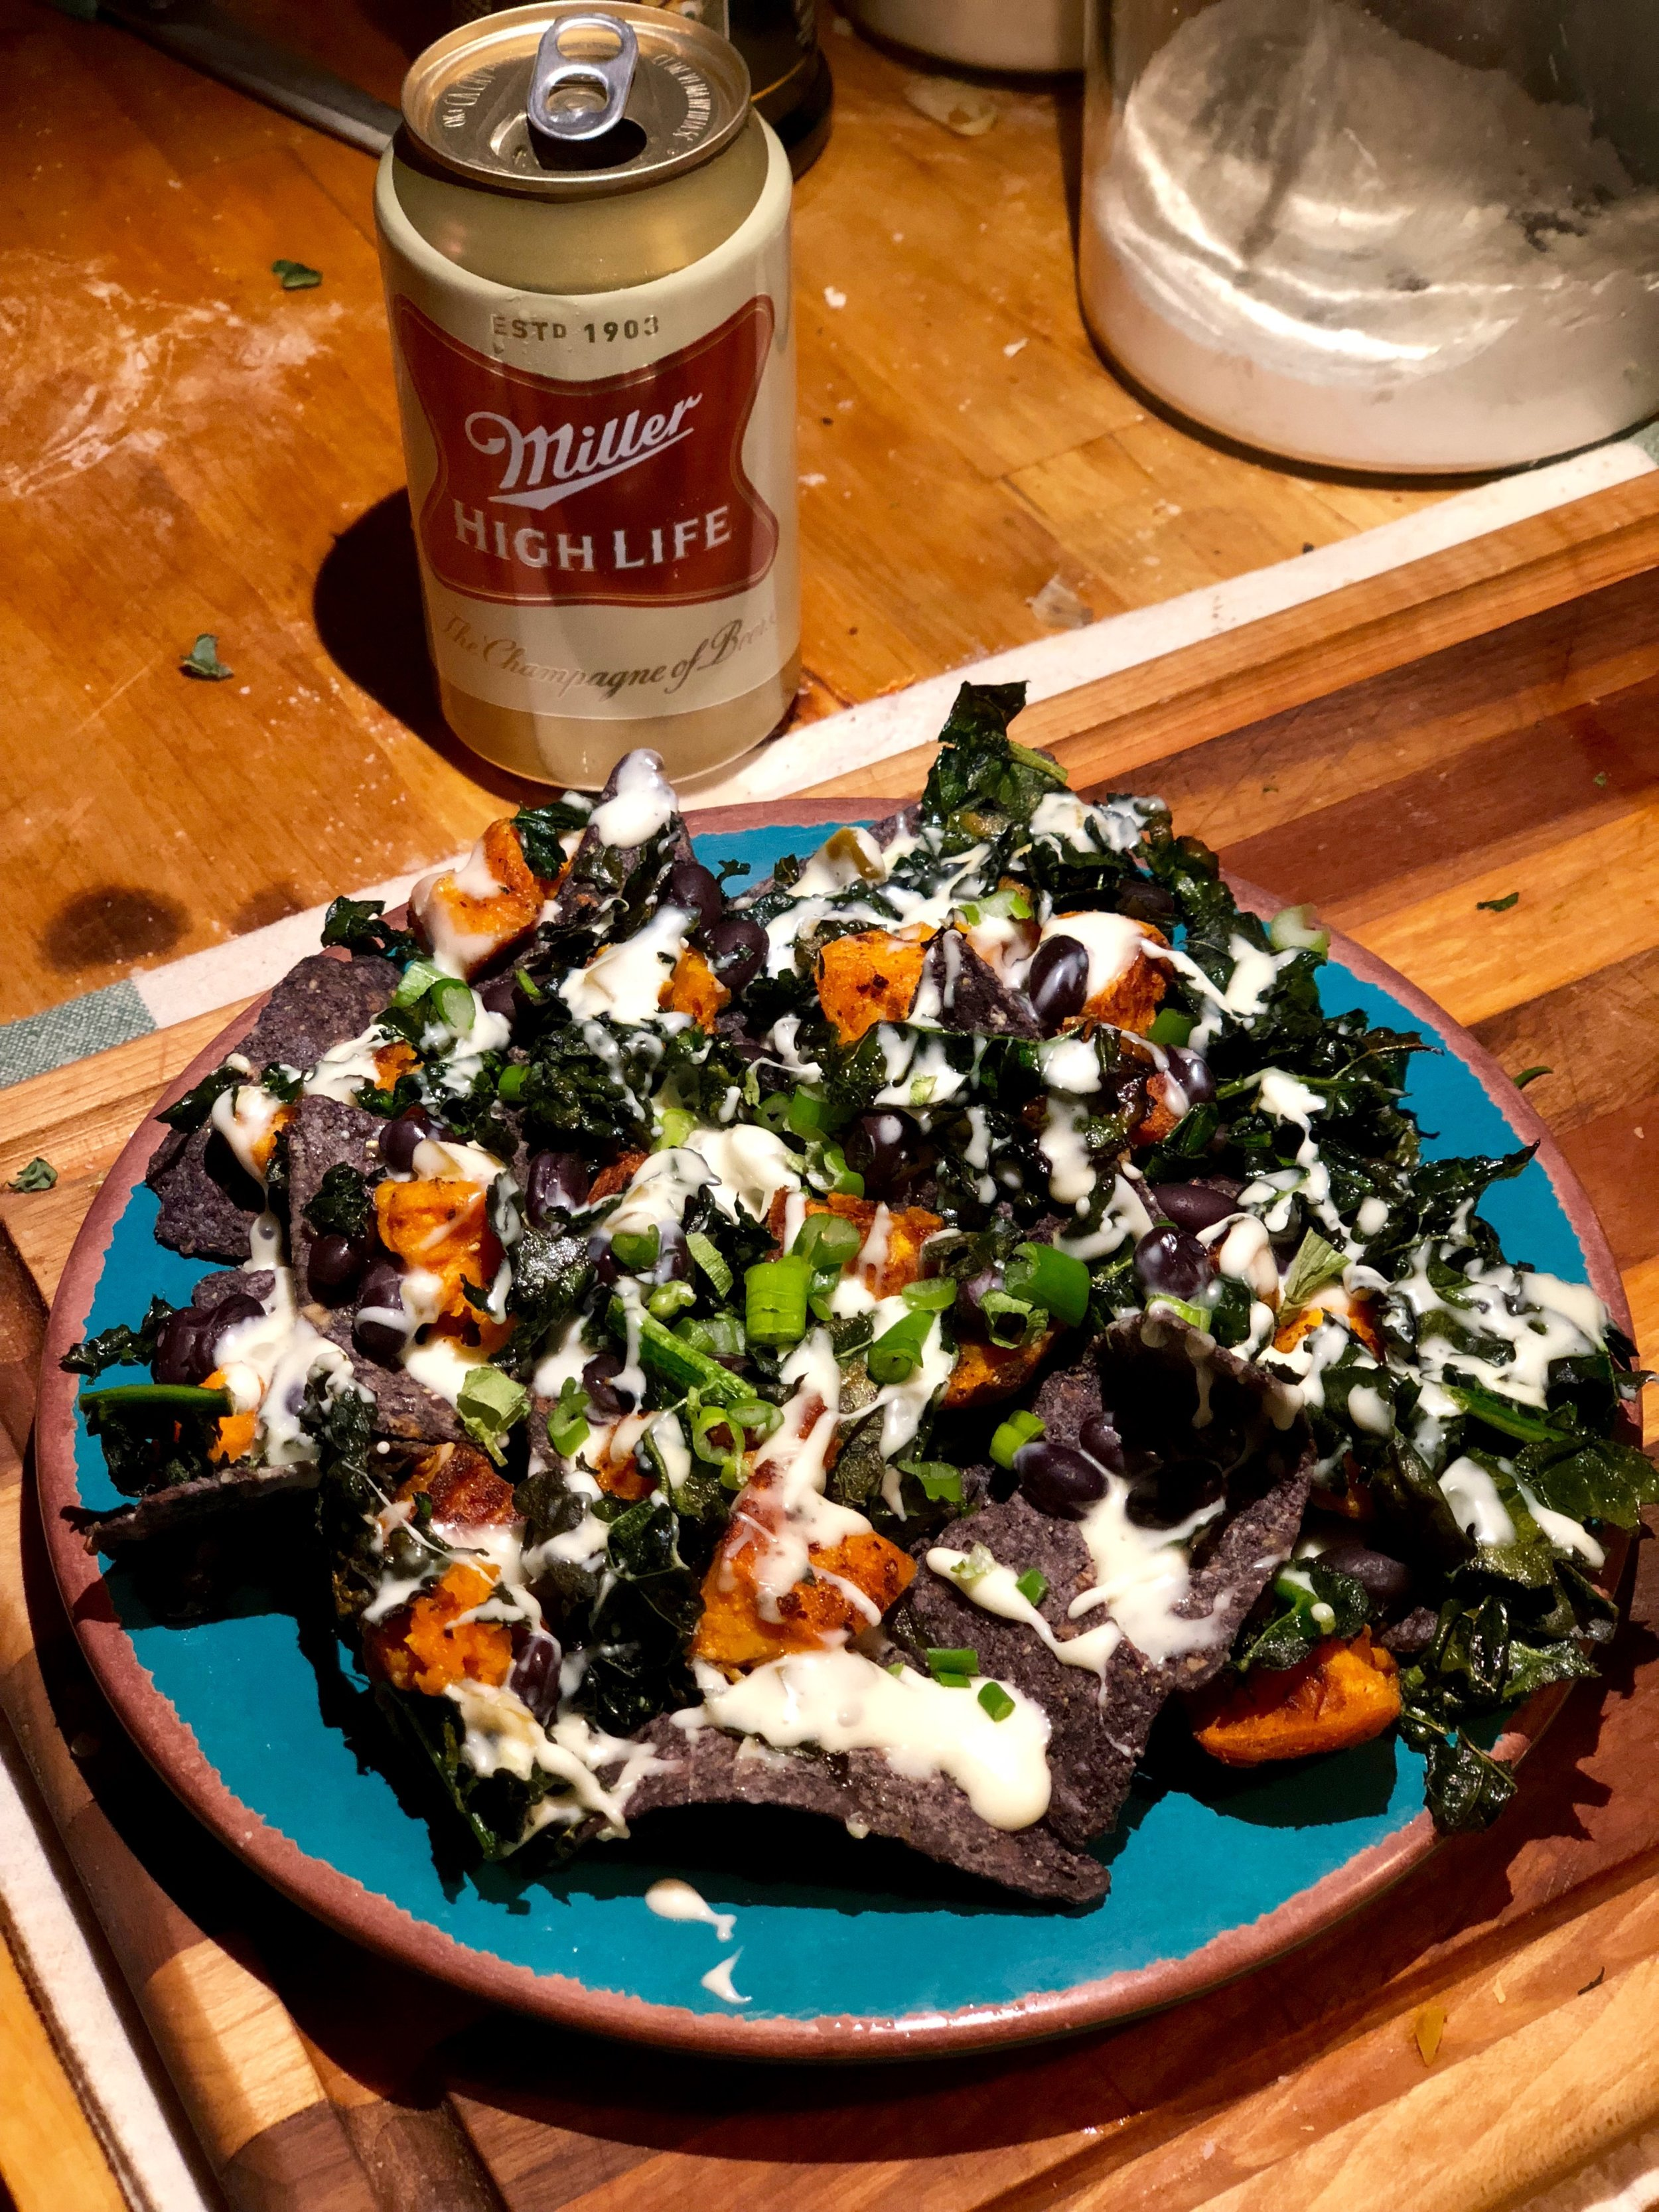 Recipe Remix! - I've added a new section to the site, where I'll be posting my takes on recipes I've either made before and changed, or recipes I've repurposed or combined. Up first, a healthier take on nachos for dinner, with a side of queso of course.